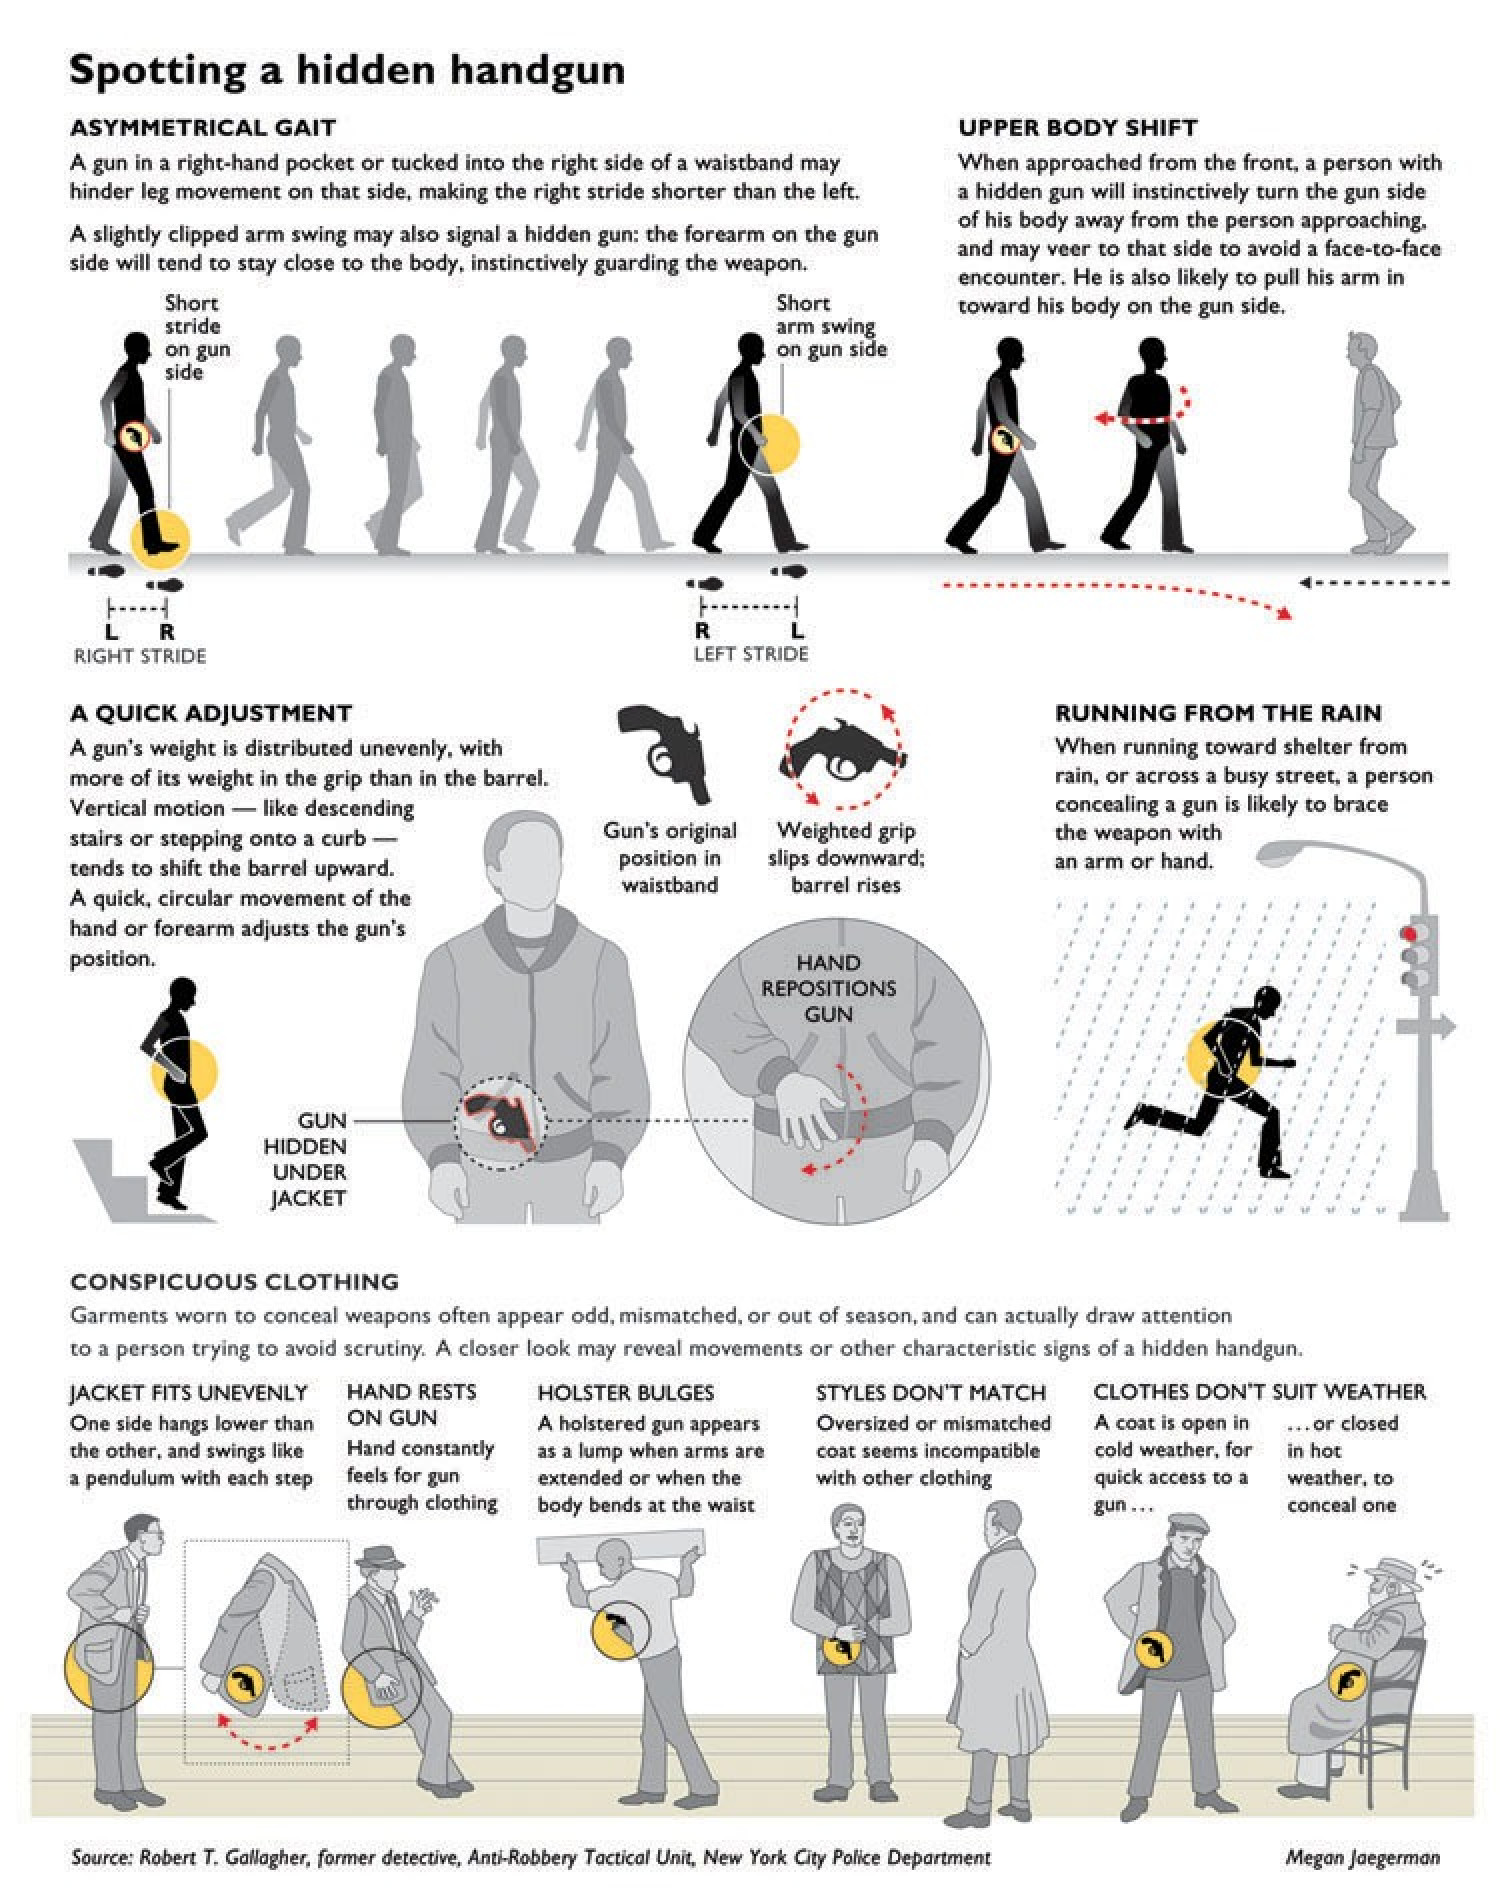 How to Spot a Hidden Handgun Infographic